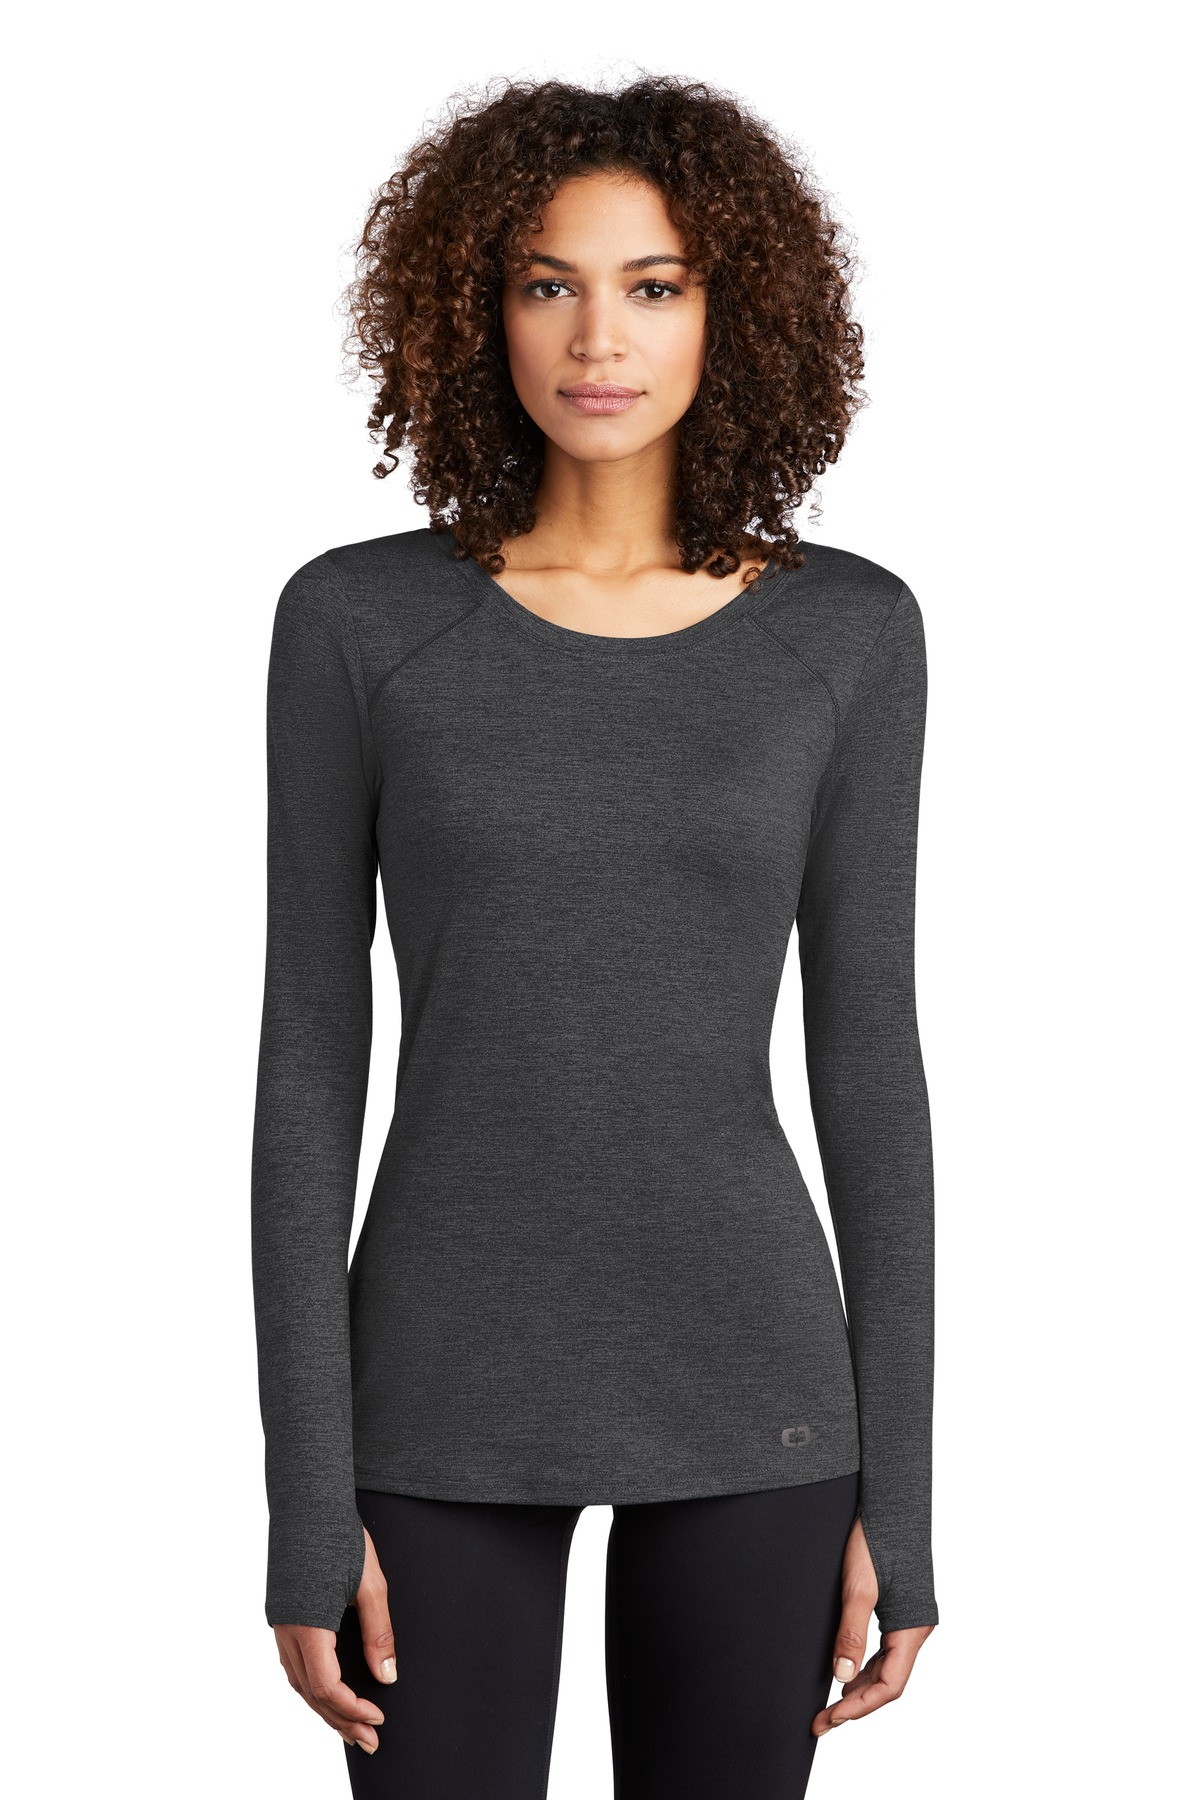 OGIO  ®  ENDURANCE Ladies Force Long Sleeve Tee LOE340 - Blacktop Heather